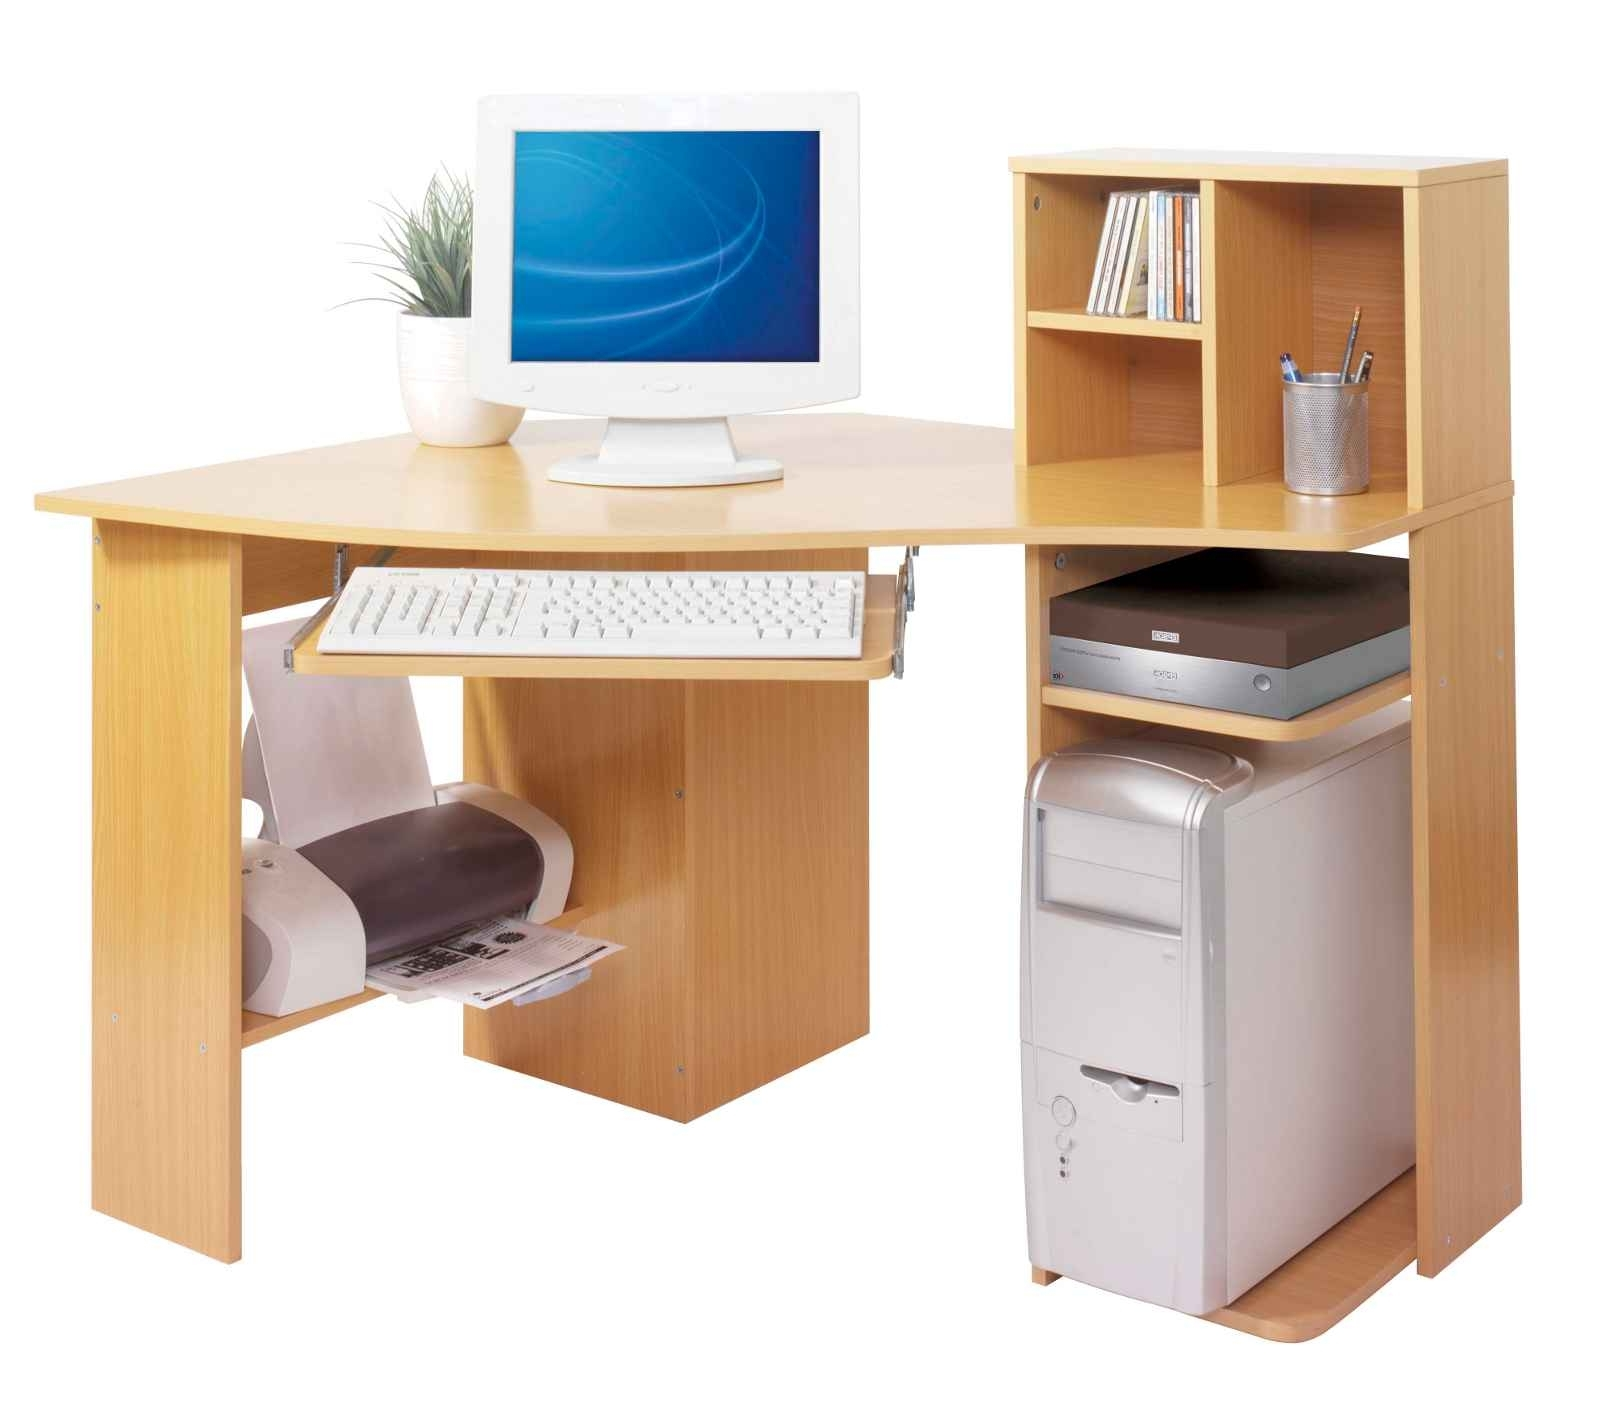 Quality Computer Desks For Preferred Remarkable Quality Computer Desk Catchy Furniture Home Design (View 12 of 20)